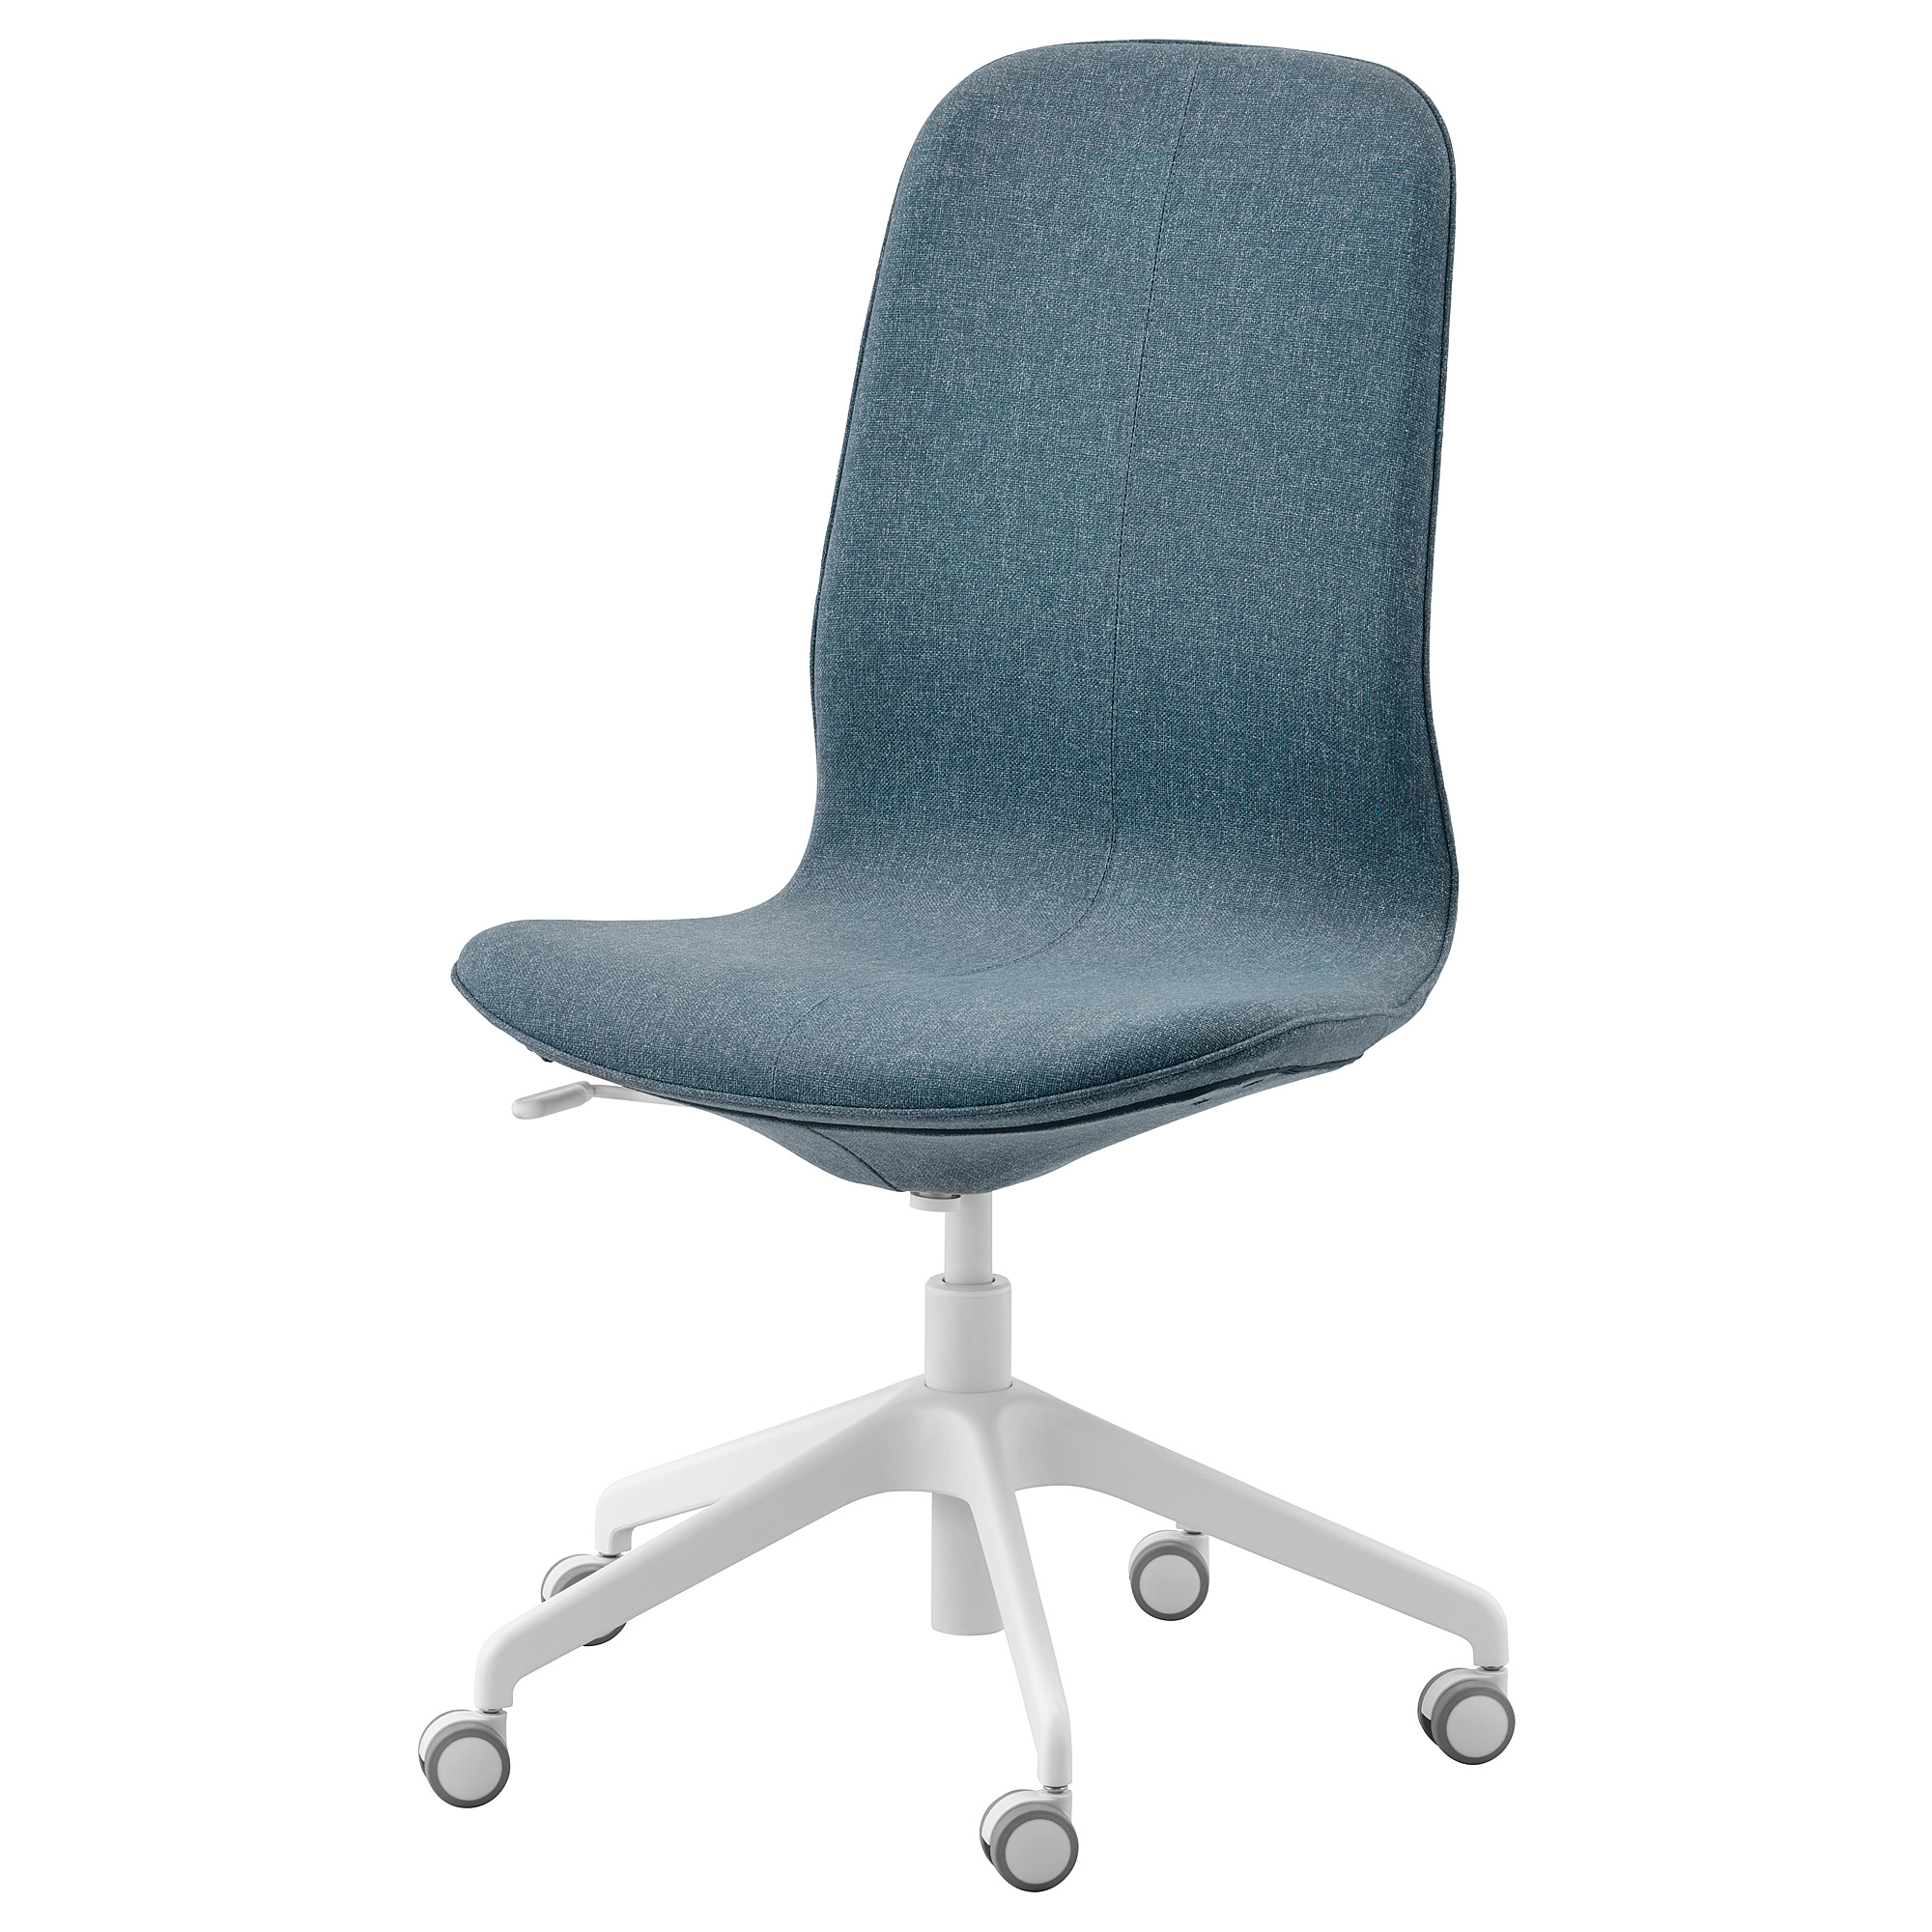 LÅNGFJÄLL - Office Chair, Gunnared Blue/white